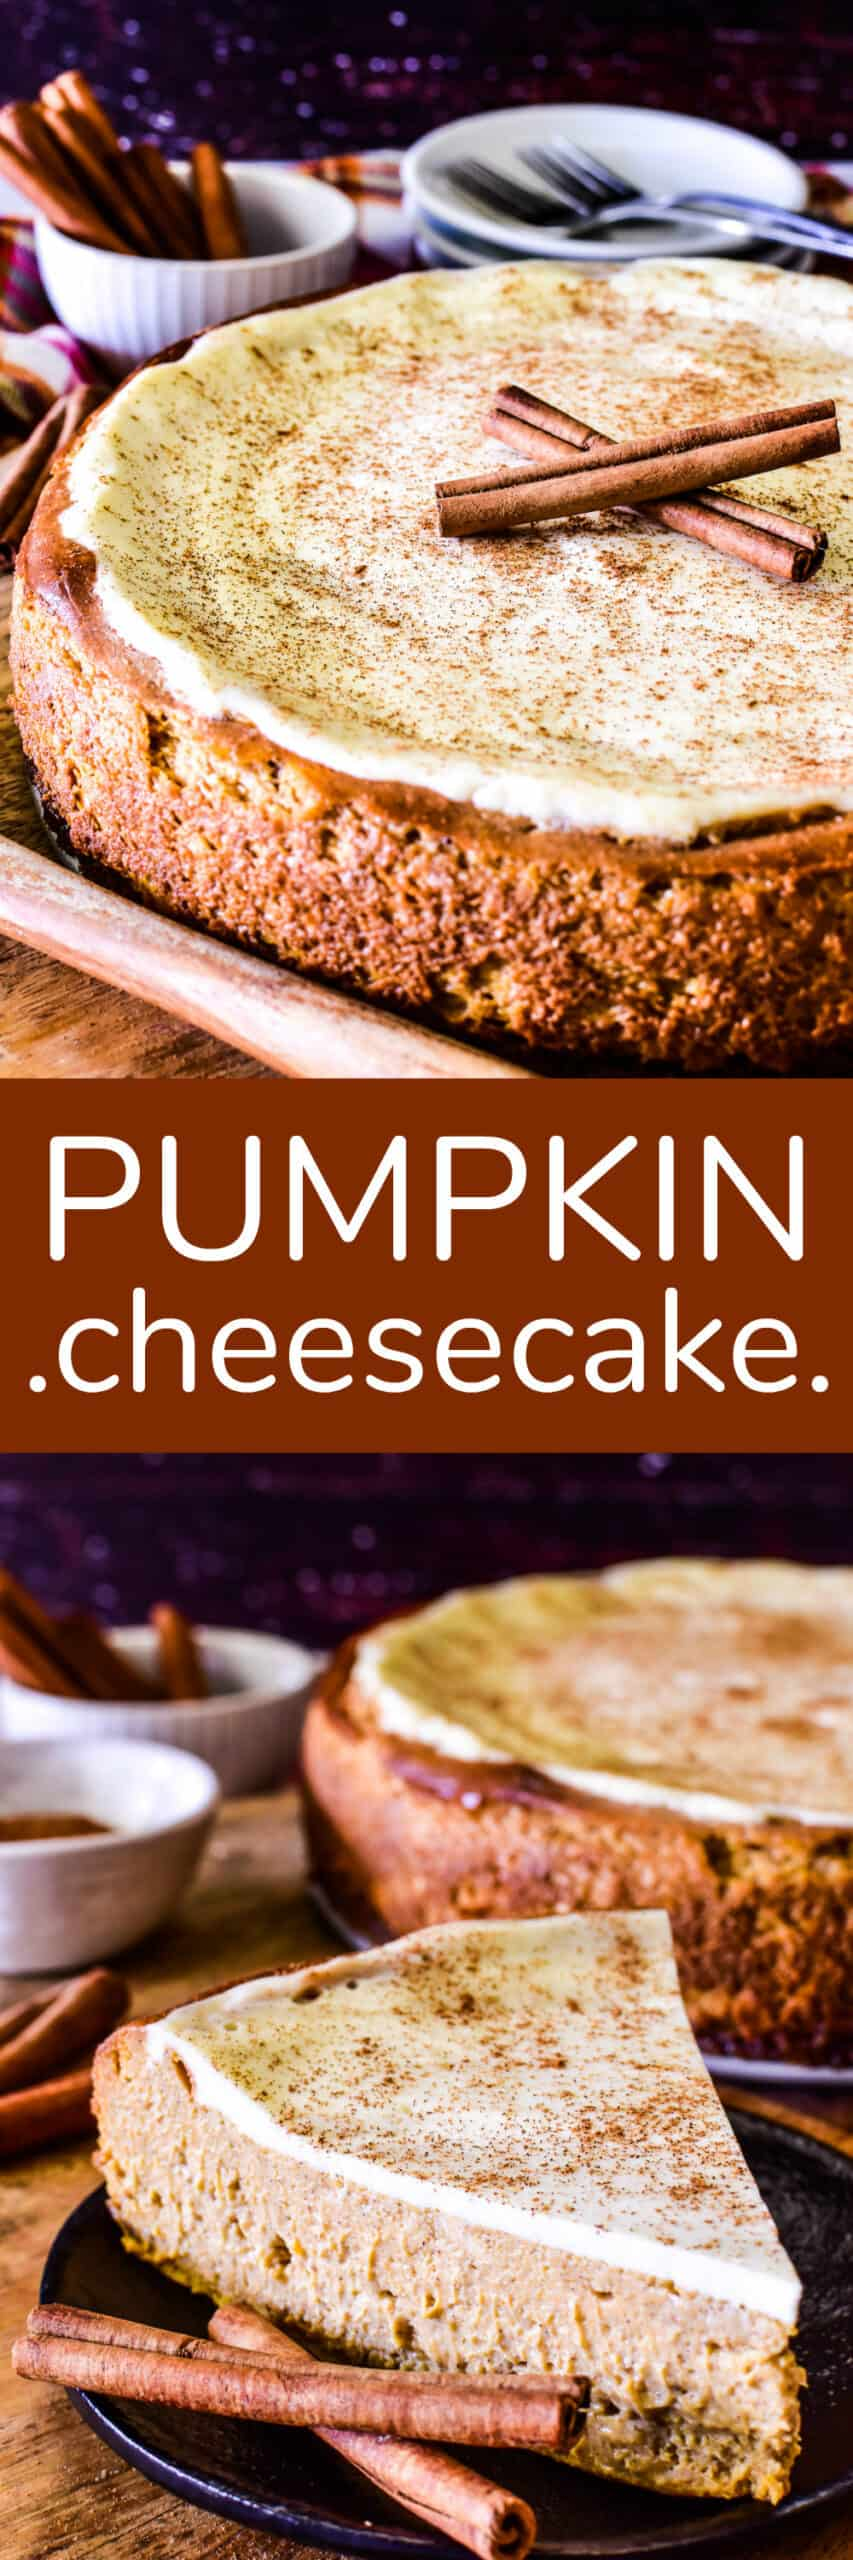 Collage image of Pumpkin Cheesecake